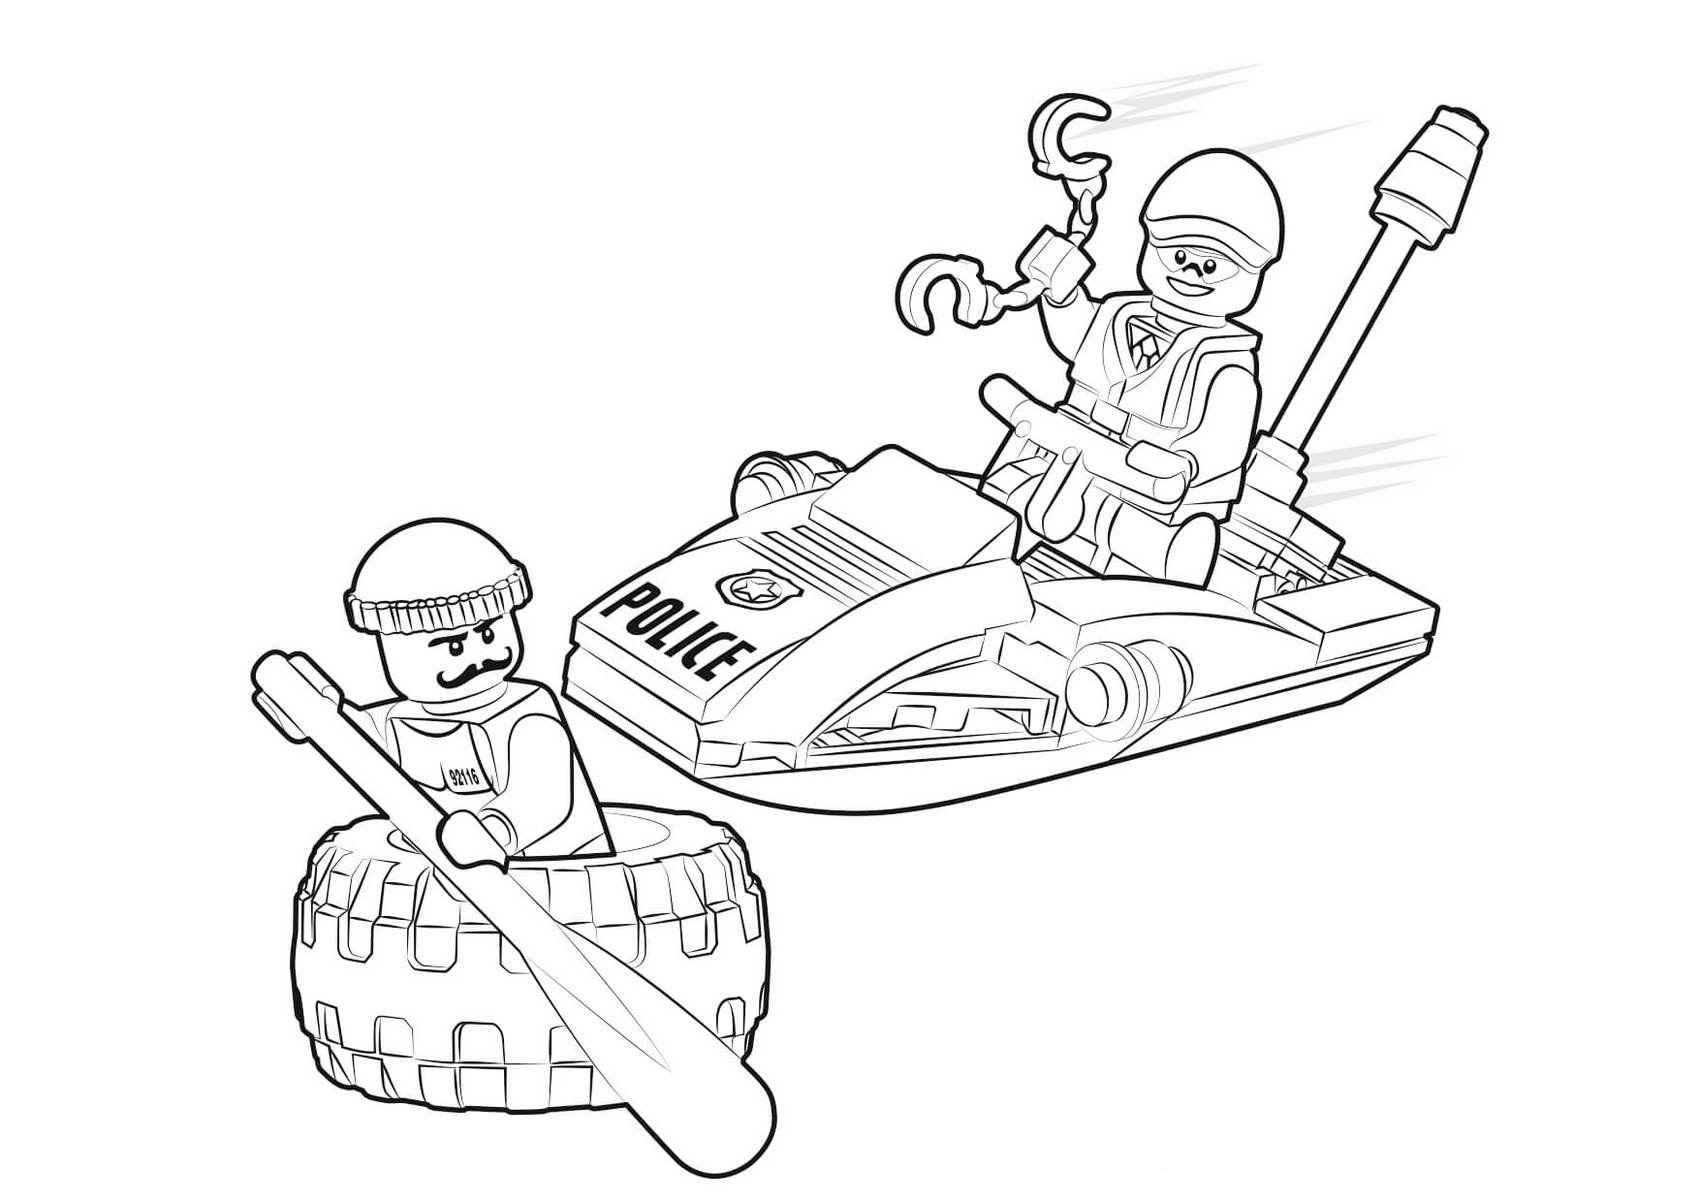 LEGO_police_Coloring_Book